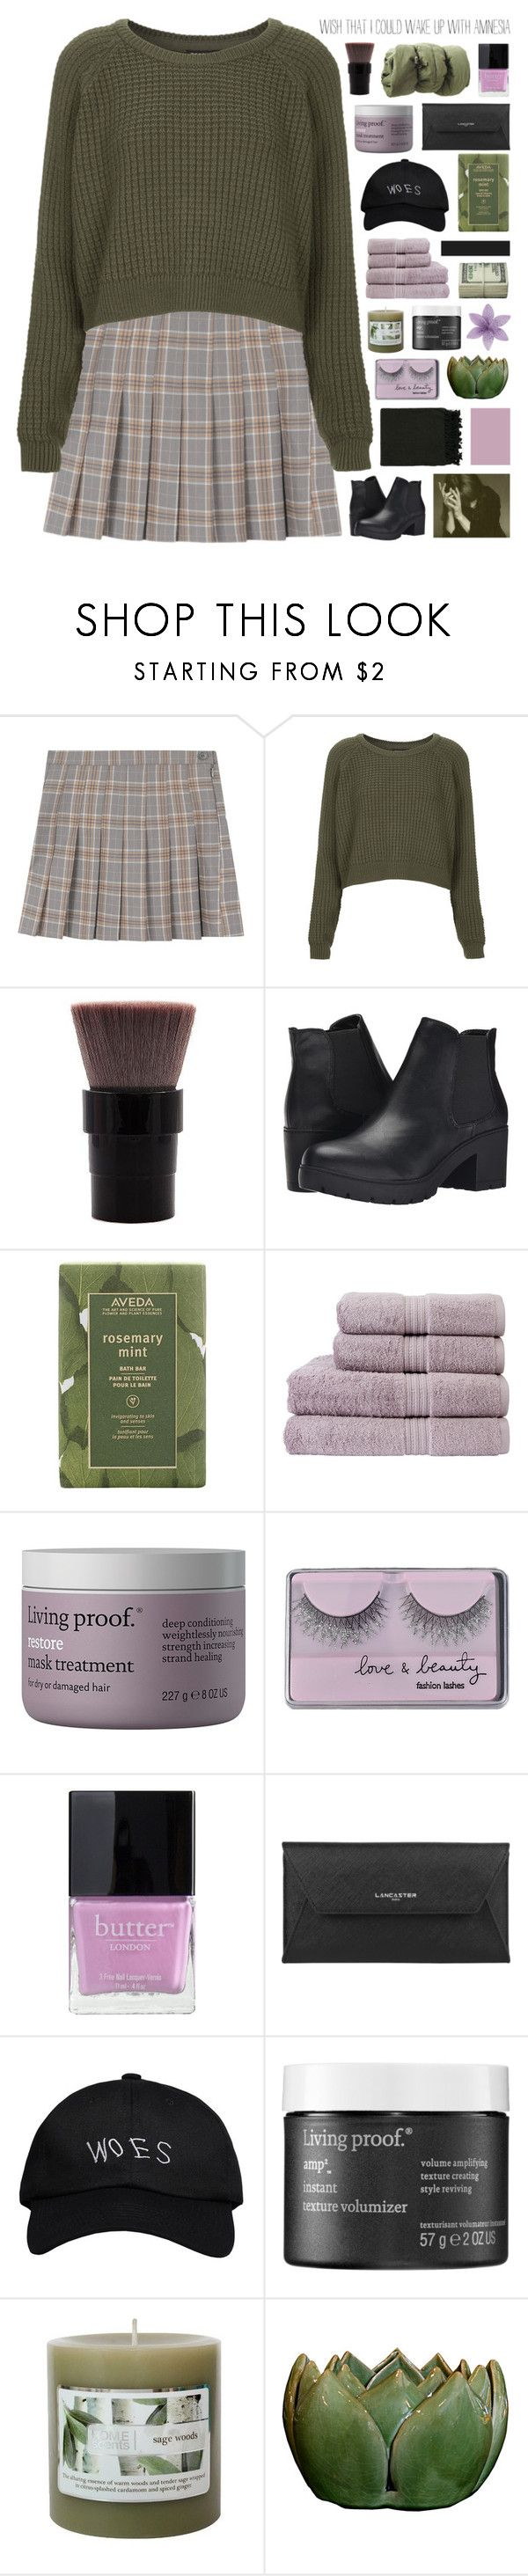 """""""no one understands // hacked"""" by symone-i ❤ liked on Polyvore featuring Topshop, Steve Madden, Aveda, Christy, Living Proof, Forever 21, Butter London, Lancaster, October's Very Own and Surya"""